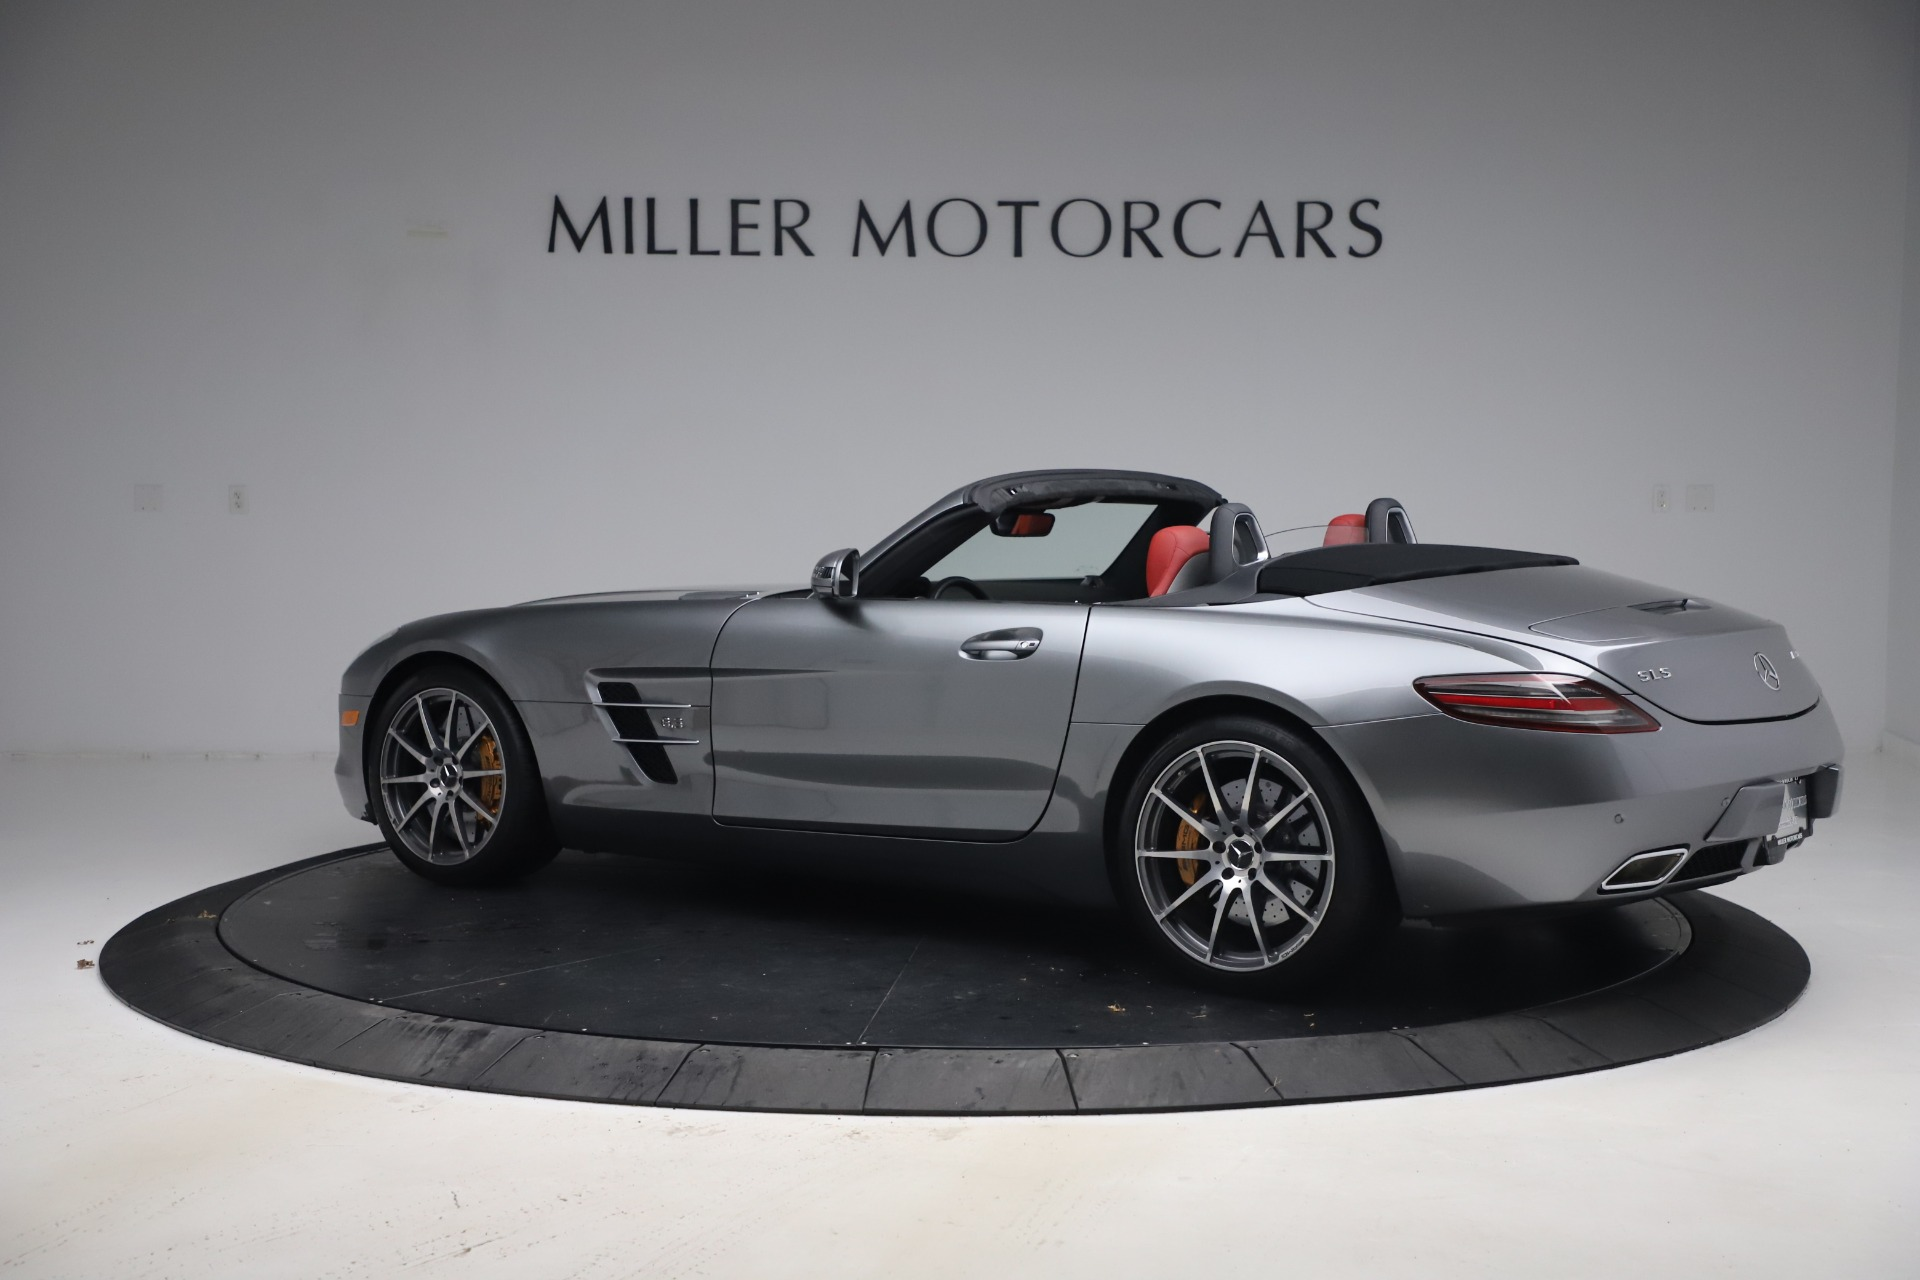 Used 2012 Mercedes-Benz SLS AMG  For Sale In Westport, CT 3189_p5